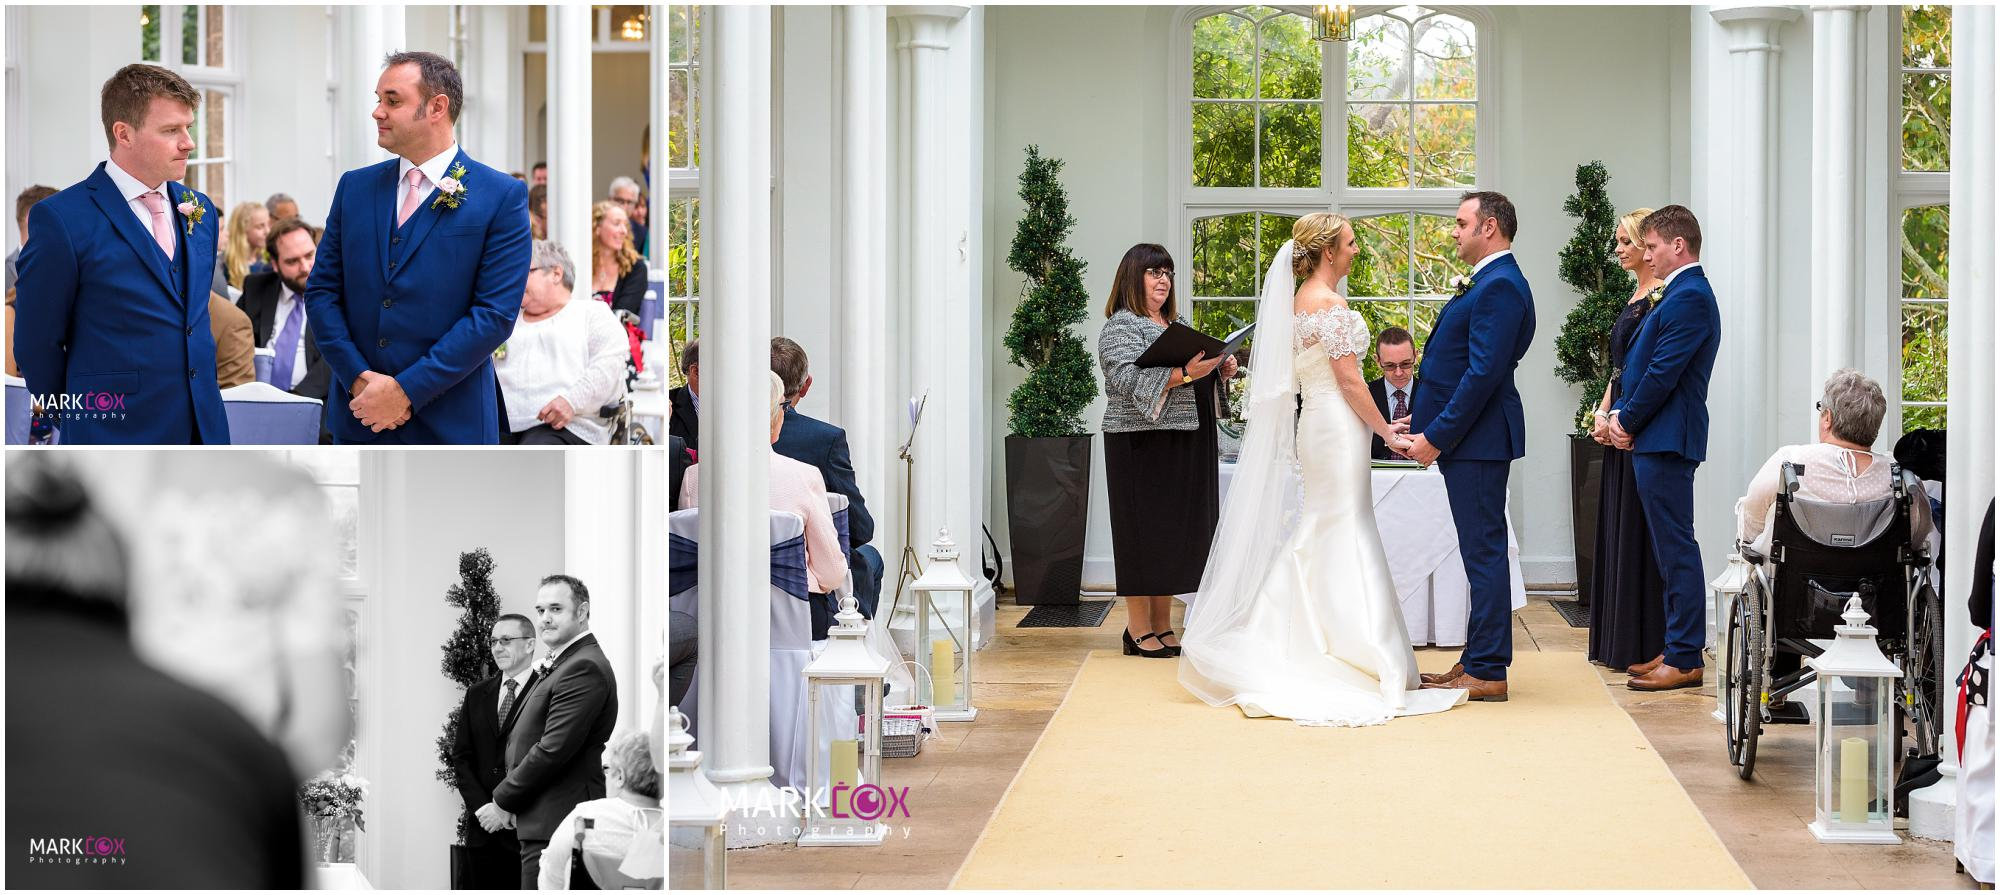 The wedding service at St Audries Park - Somerset Wedding Photographer-001